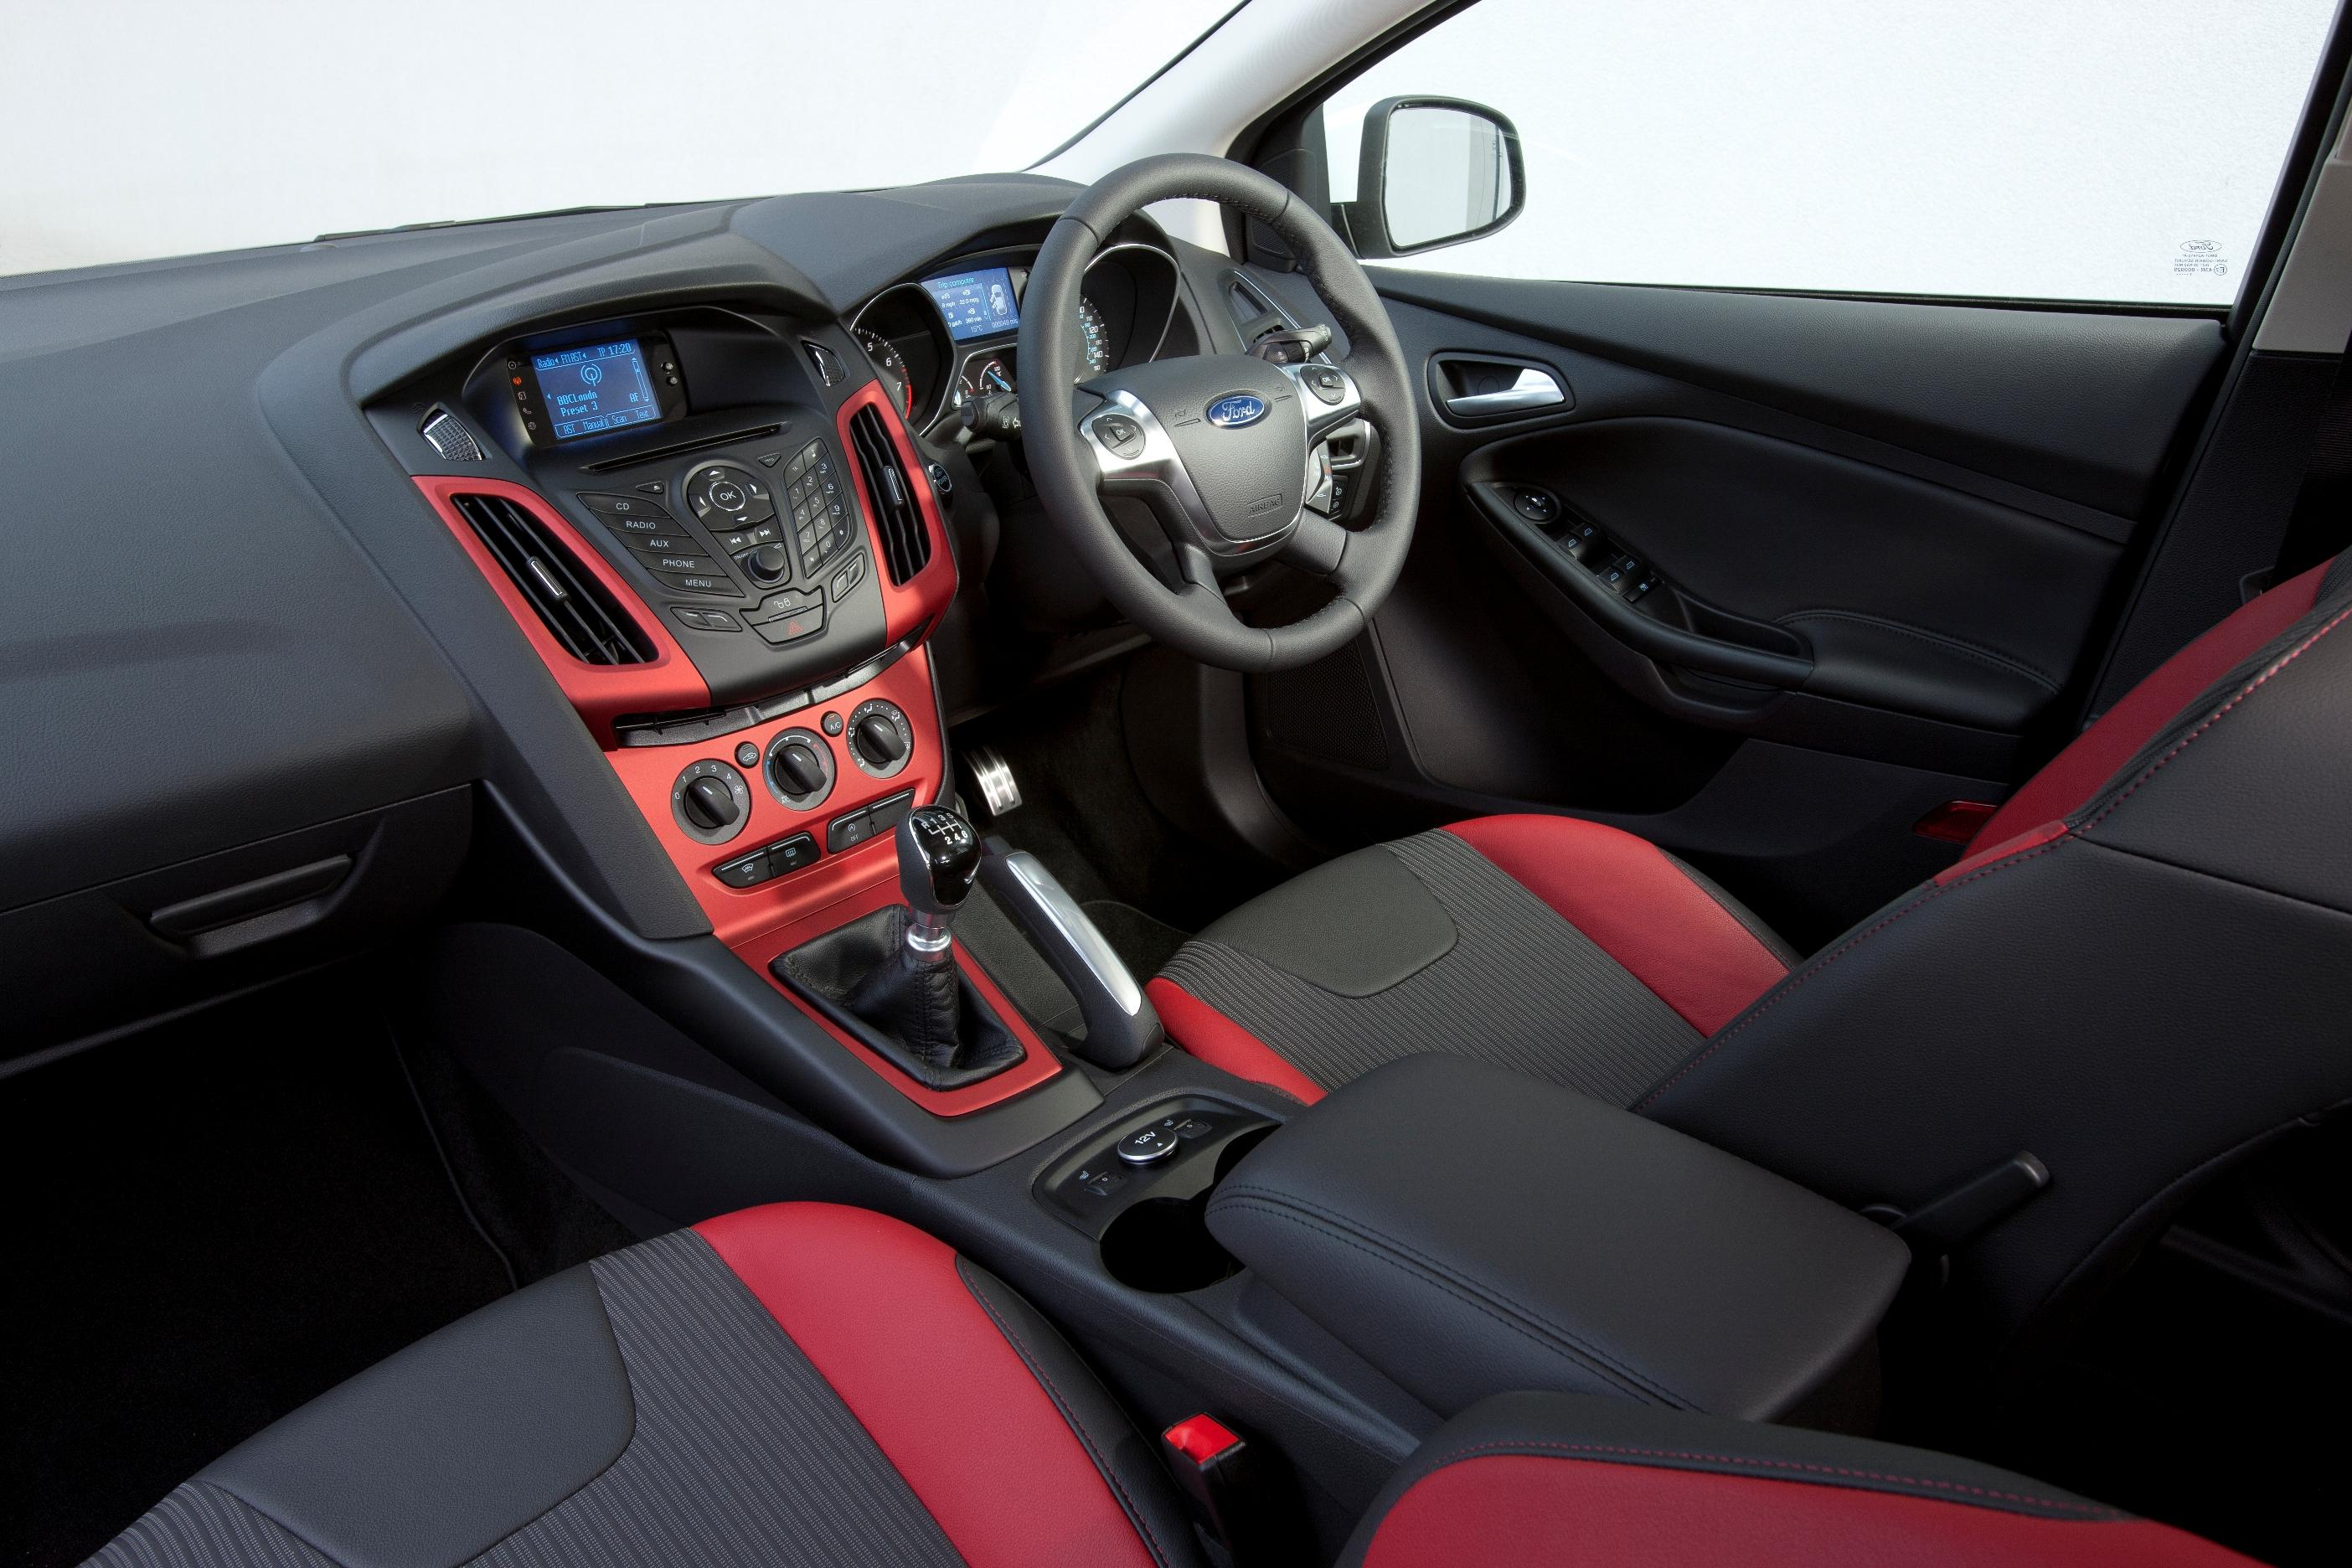 Ford Focus interior red and black